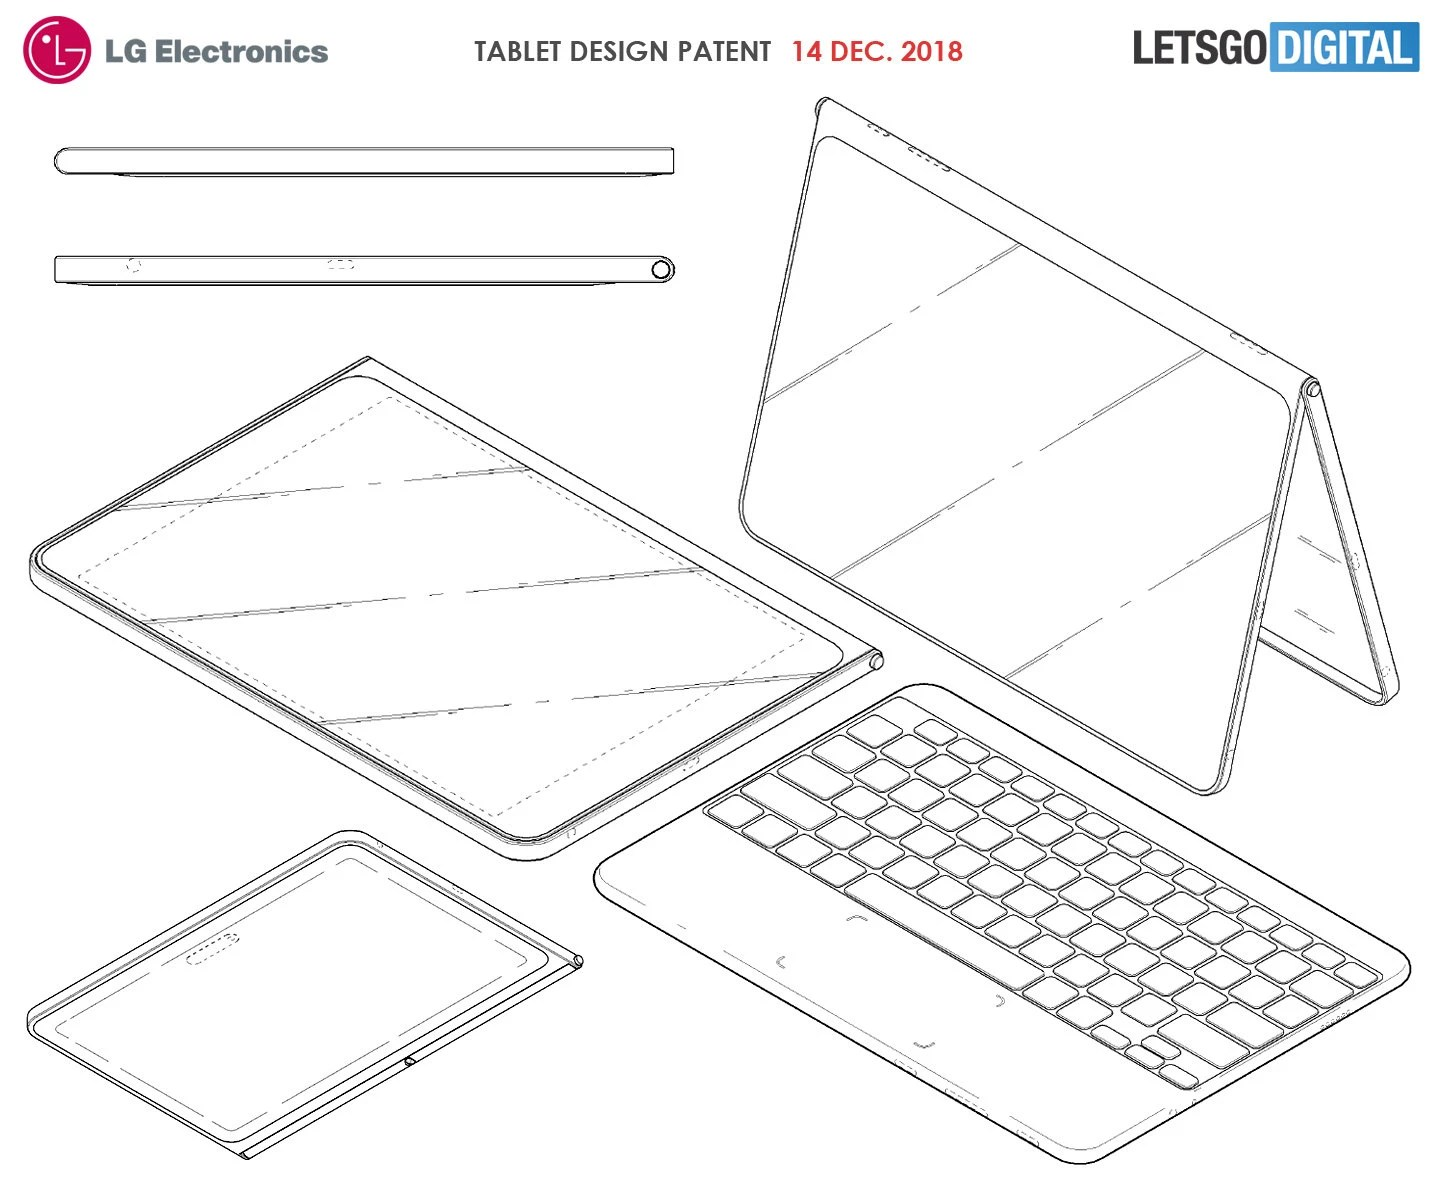 Lg S Upcoming Tablet Could Feature Detachable Wireless